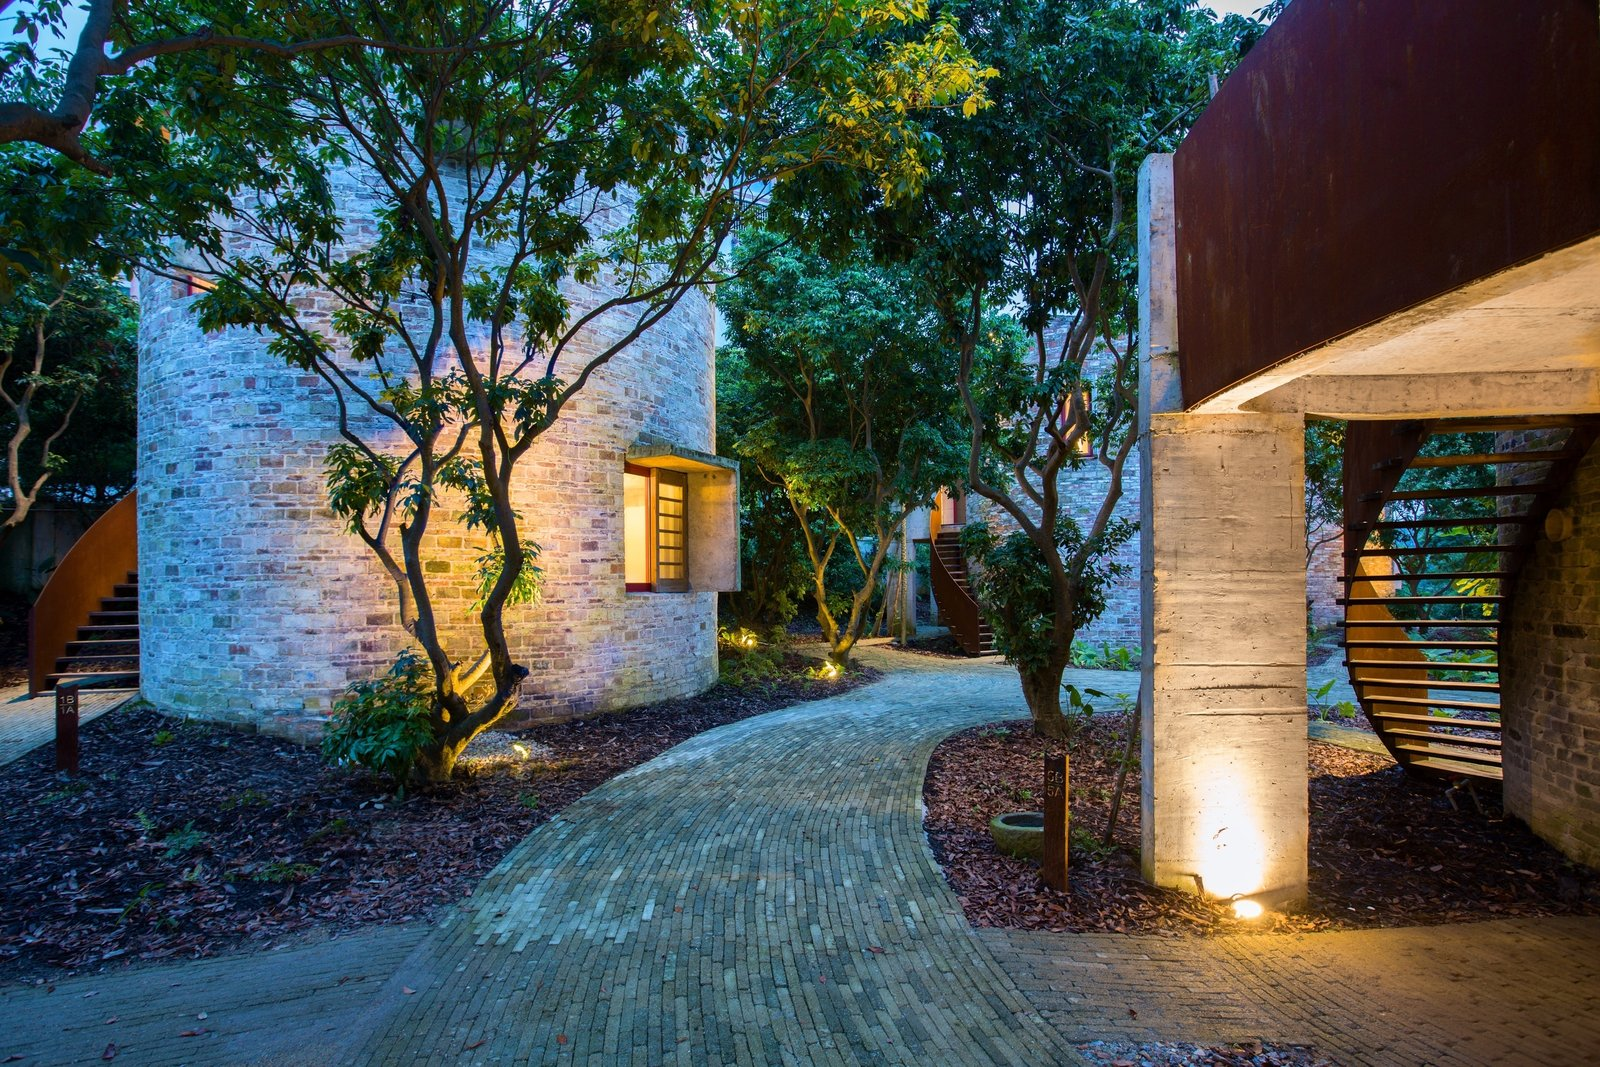 The Dome Home is part of a small community that also features seven round houses designed to accommodate designers and visitors. These round towers are all clad in reclaimed bricks. The Dome Home's visual cues continue throughout the village, manifesting themselves in the form of curving paths and staircases.  Photo 6 of 8 in A British Furniture Brand Built This Round Village in China